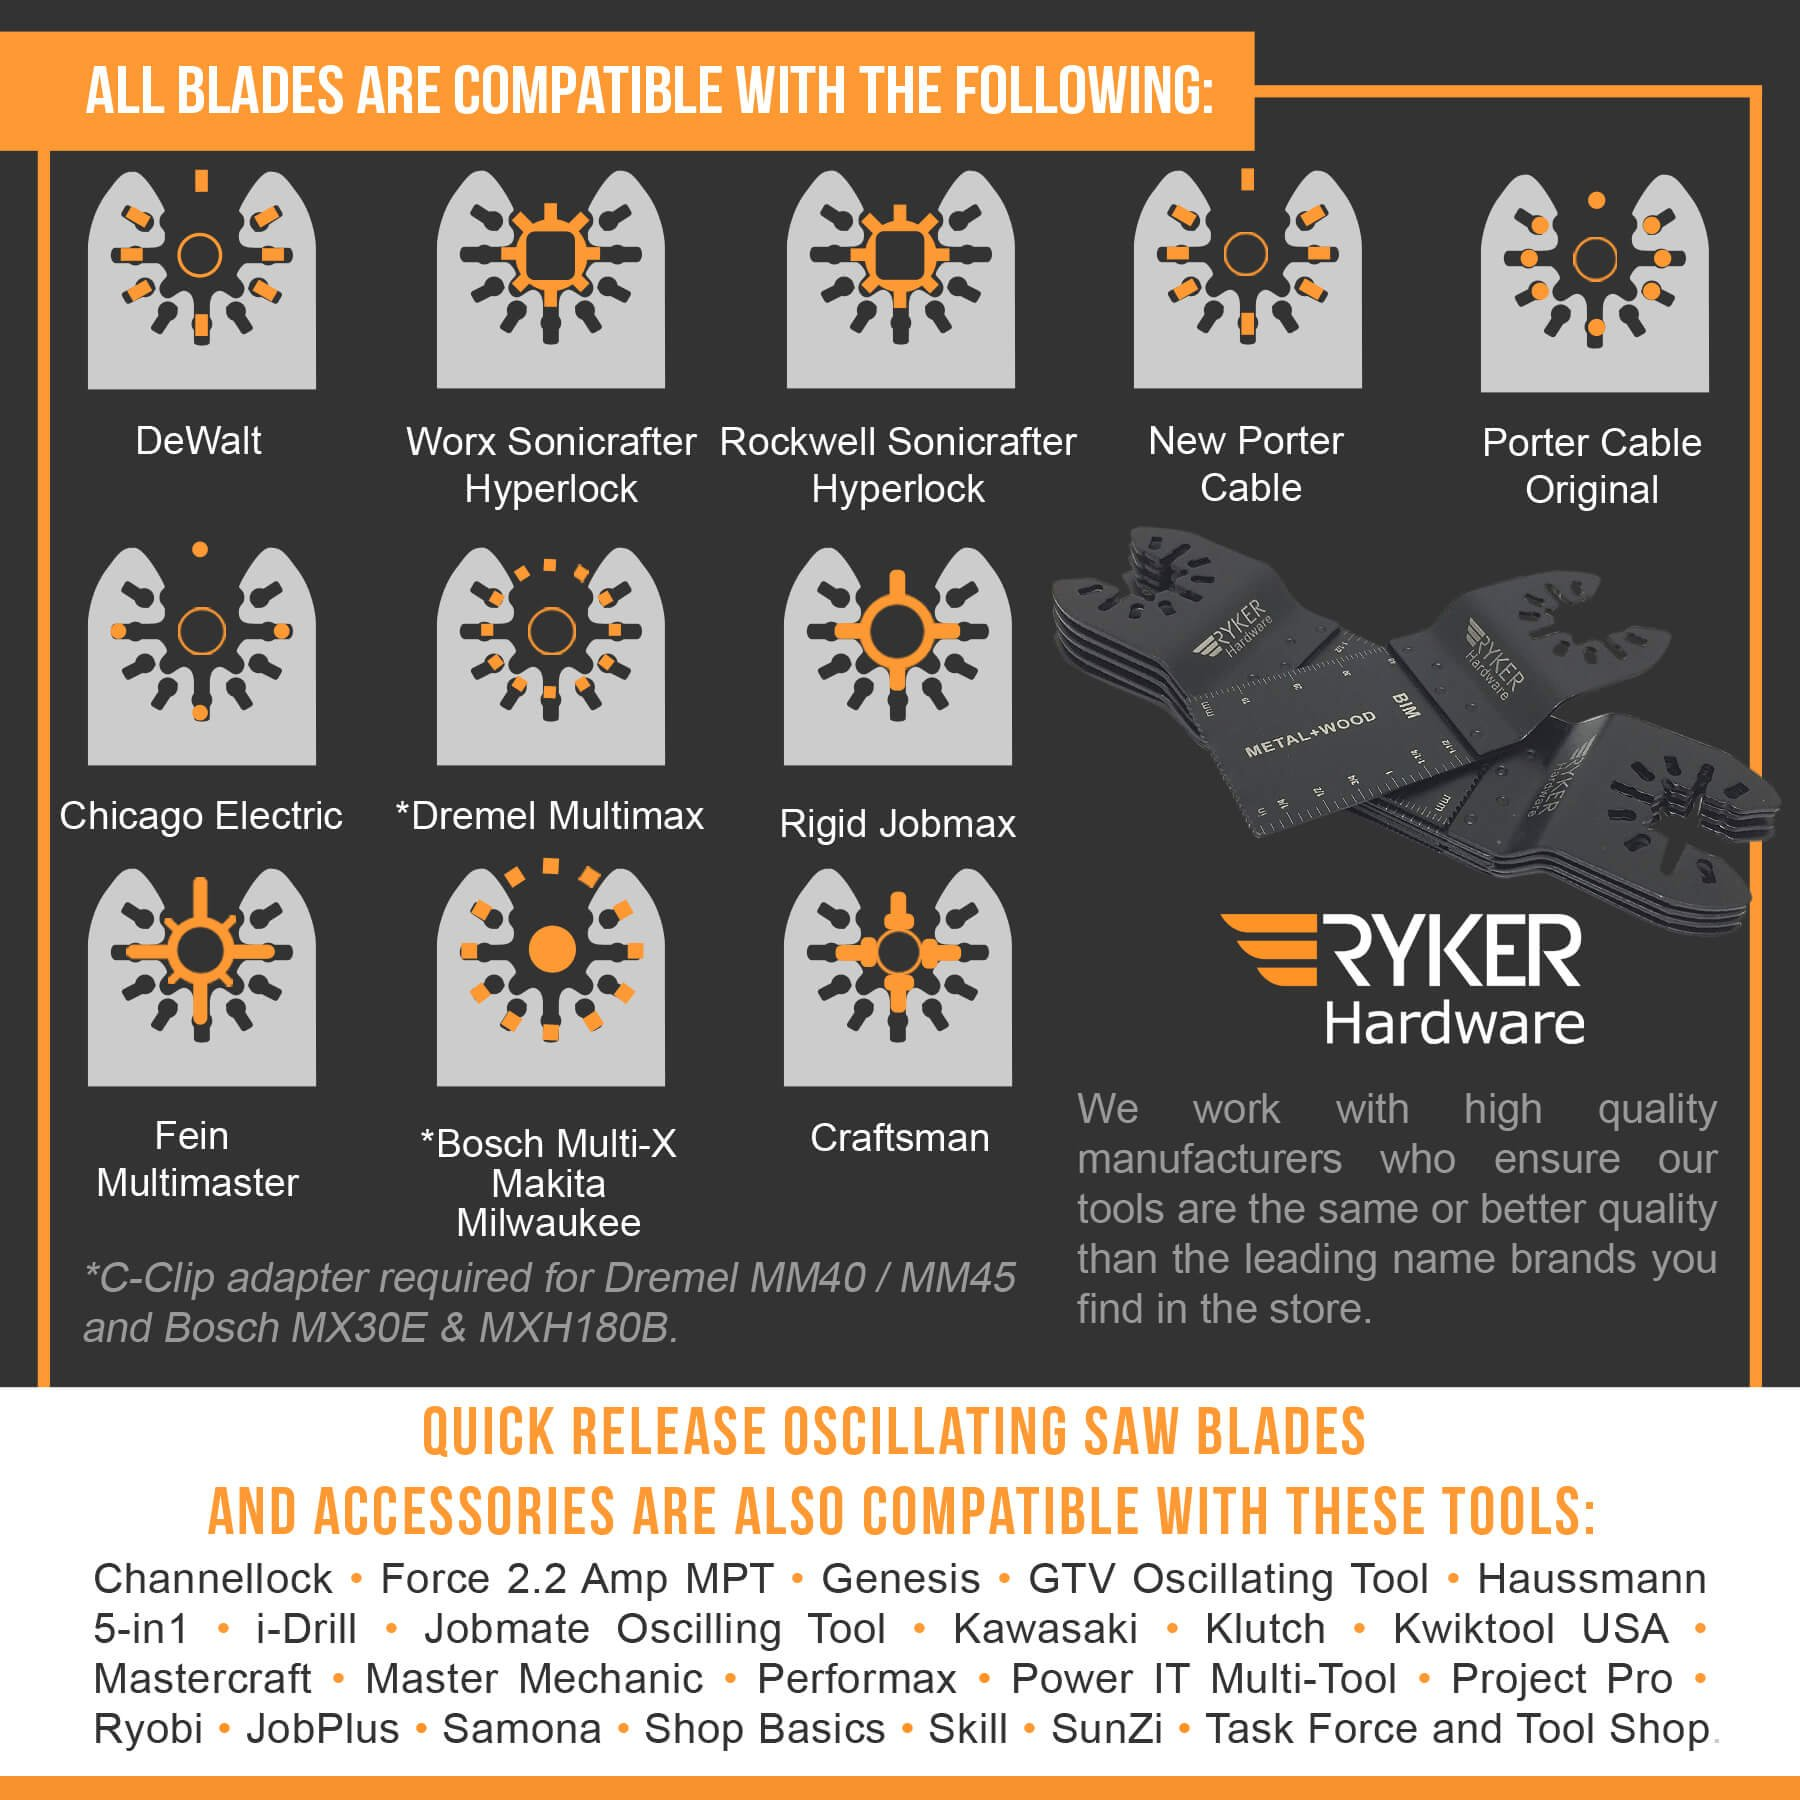 Quick Release Oscillating Saw Blades - Platinum Pack Multitool Bi-Metal Blade for Fein Multimaster, Dewalt, Bosch, Dremel Multi Max, Milwaukee, Makita, Rockwell Sonicrafter, Porter Cable Power Tool by Ryker Hardware (Image #7)